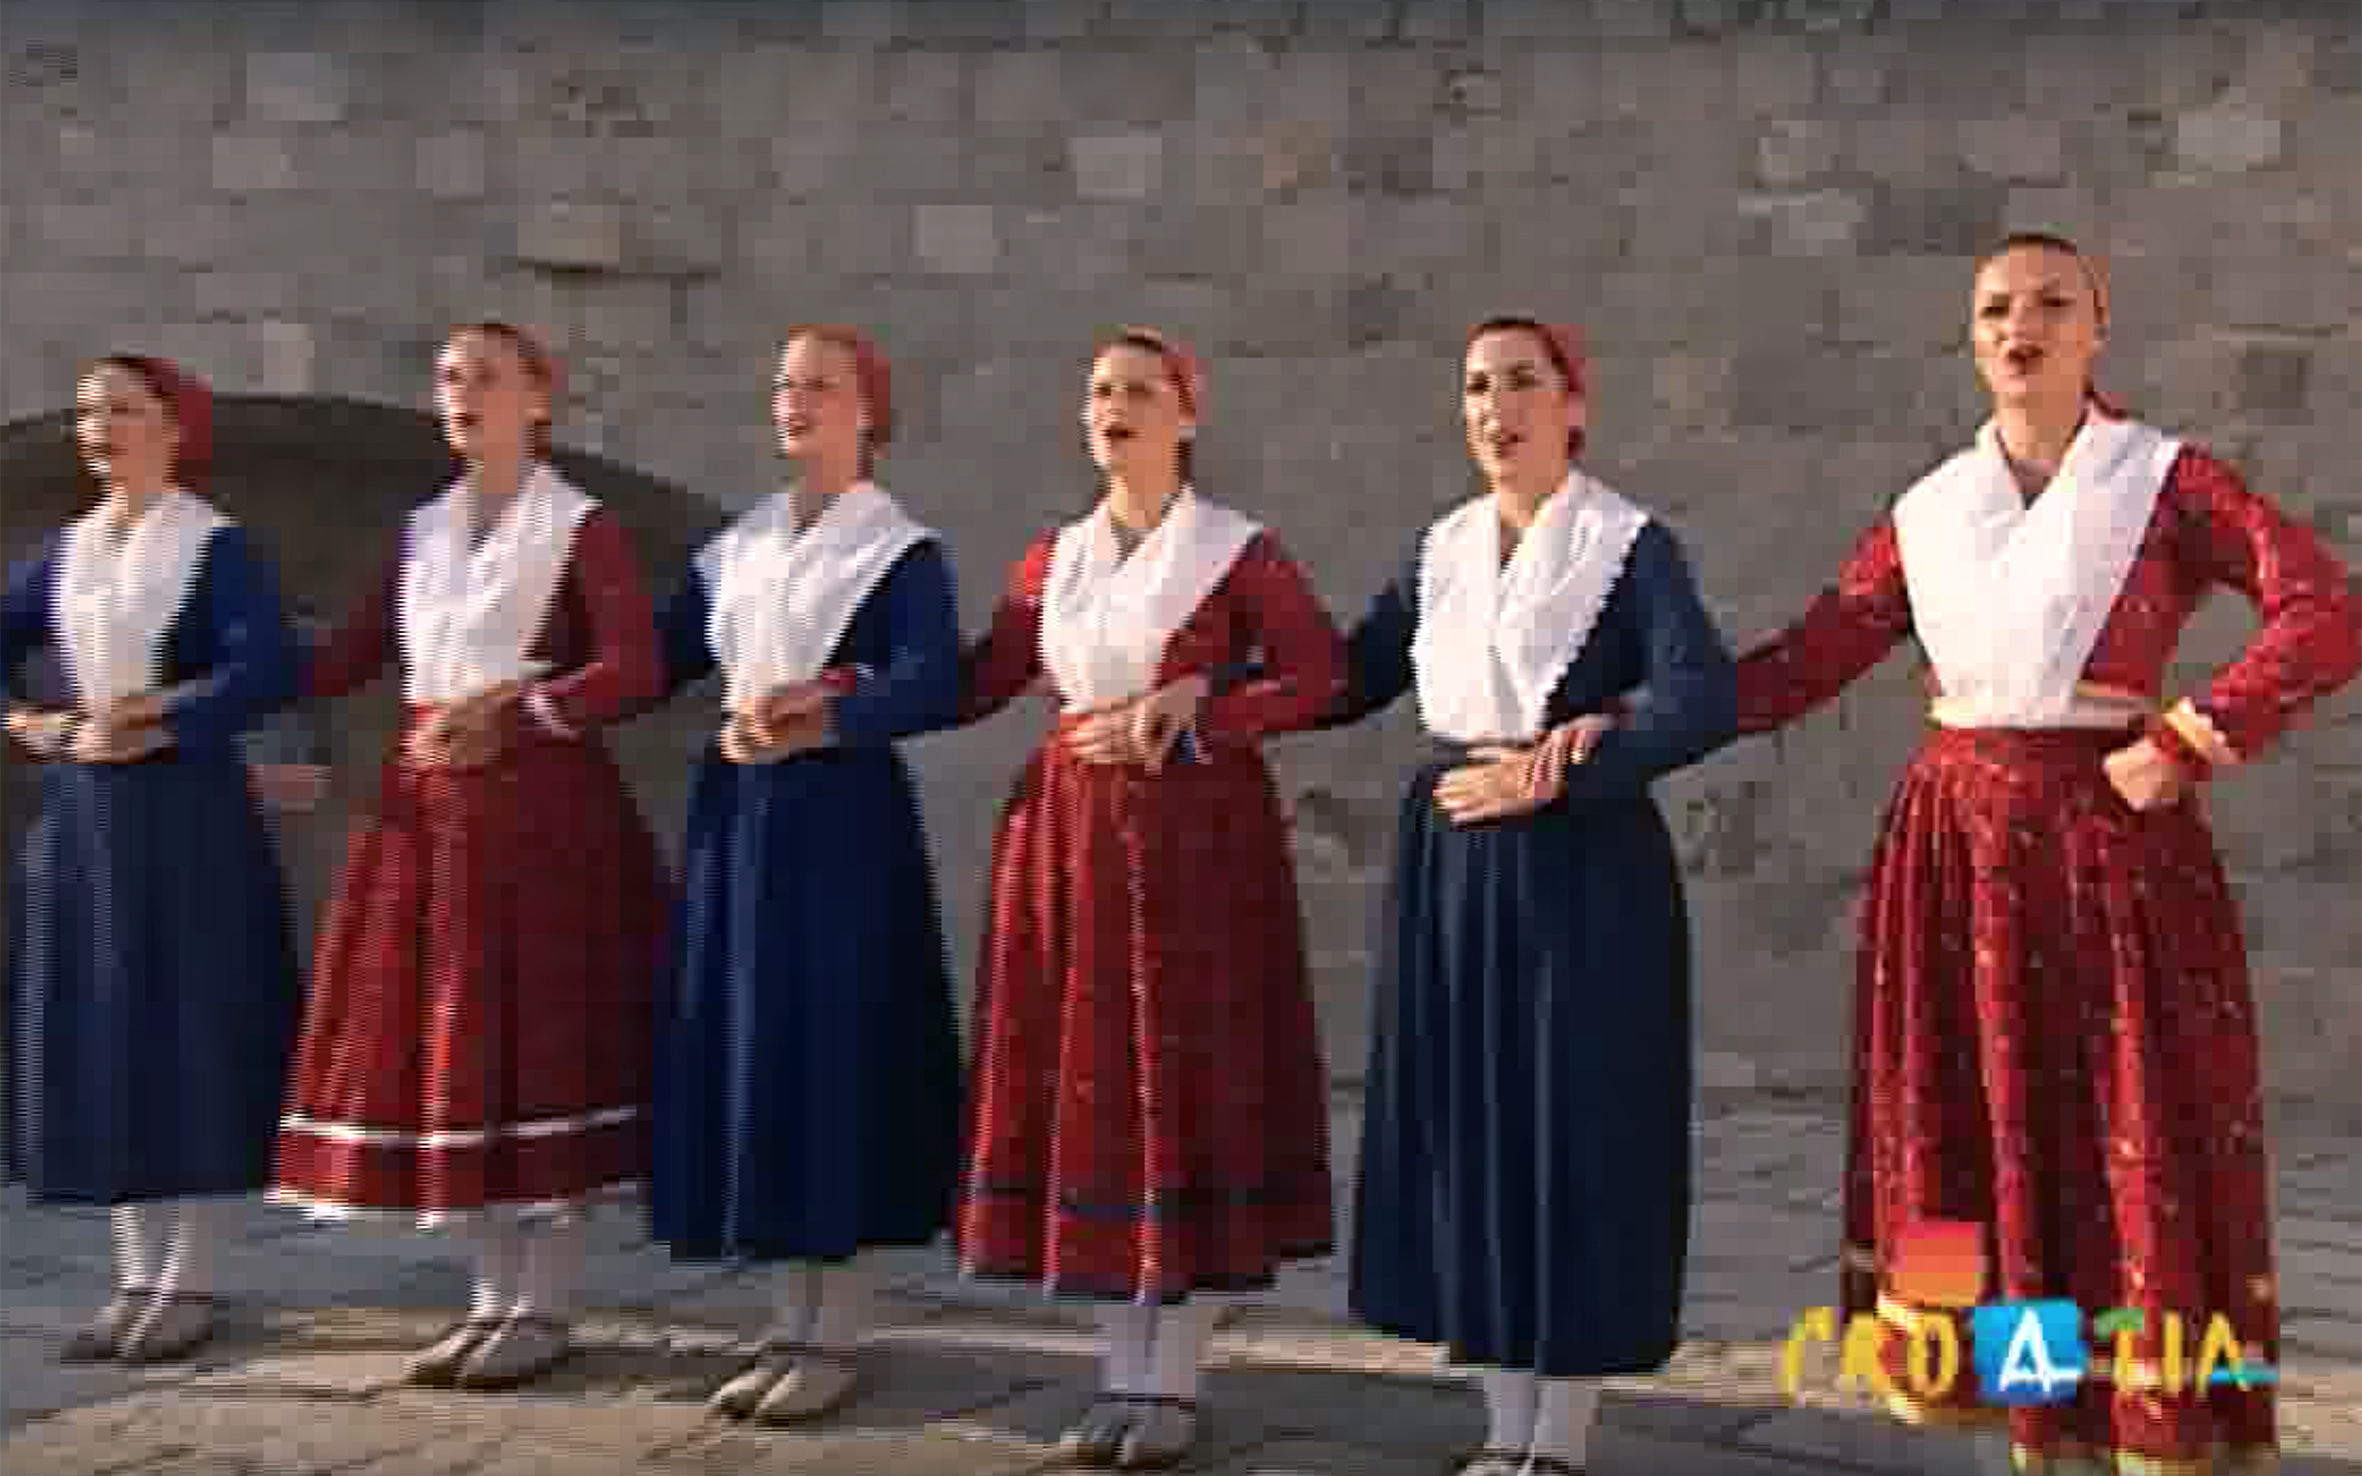 537.Lindjo / Croatia - Lindjo is the most popular dance of the Dubrovnik coastal region in Croatia. It is danced to the accompaniment of lijerica (an old South Dalmatian instrument with three strings). It is extensively performed in the Dubrovnik's region, in Konavle area, in Dubrovačko Primorje on the Pelješac Peninsula and on the islands of Mljet and Lastovo, as well as parts of Herzegovina. The dance master plays sitting, with lijerica on his left knee, while stamping with his right foot, thus dictating rhythm to the dancers. They move in a circle around the dance master, who gives commands (in rhyme, humorous and often with double meaning). He also decides who will dance with whom and dictates the change of dance figures, along with encouraging the dancers to compete in improvisations.